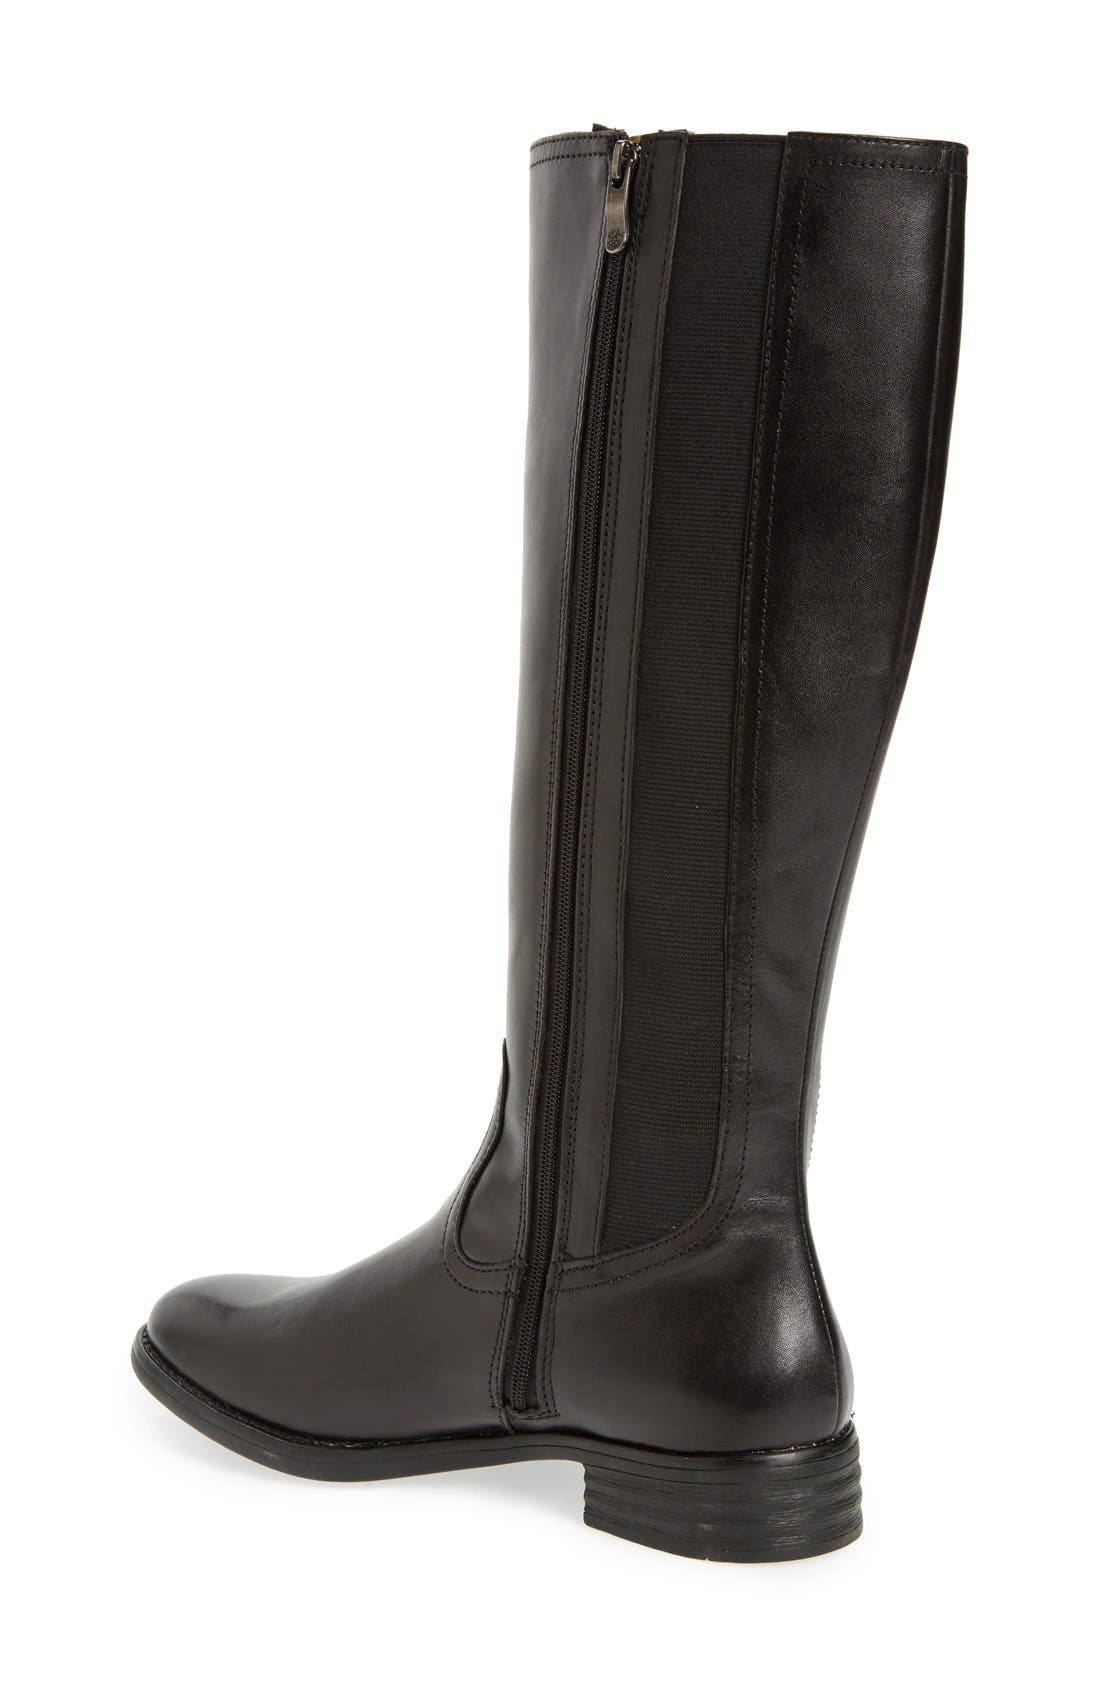 'Tanga' Riding Boot,                             Alternate thumbnail 2, color,                             001